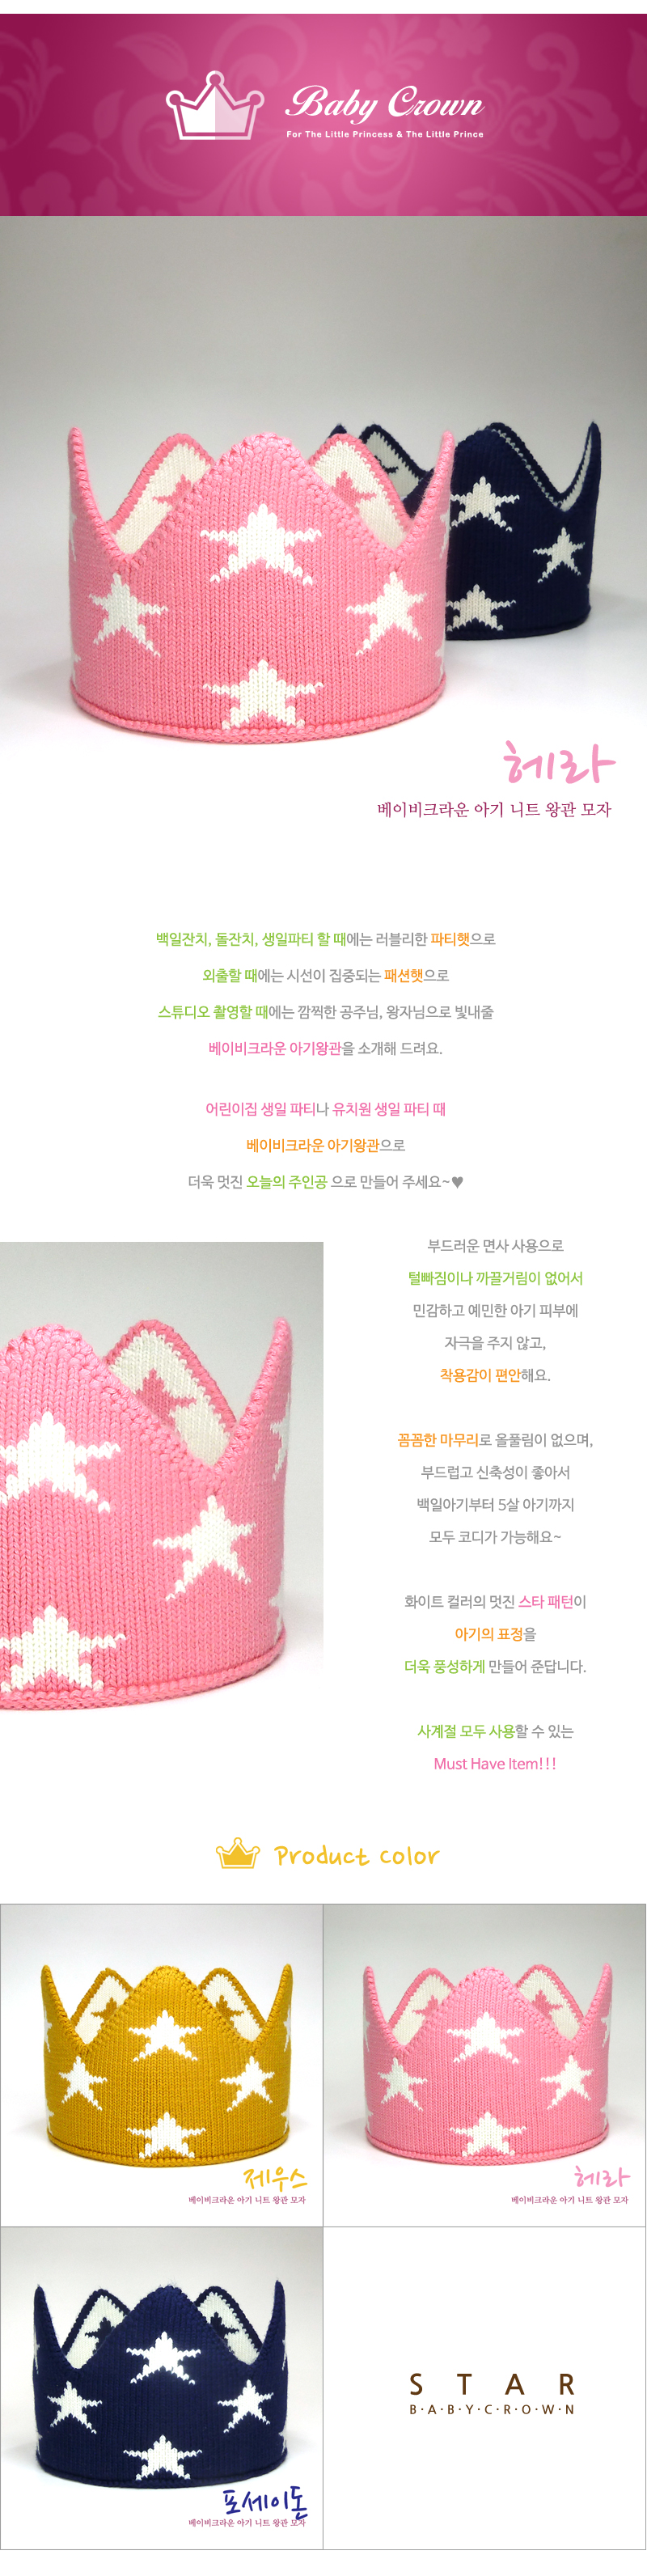 [ Babycrown ] [Baby Crown] baby knit crown star (hera)